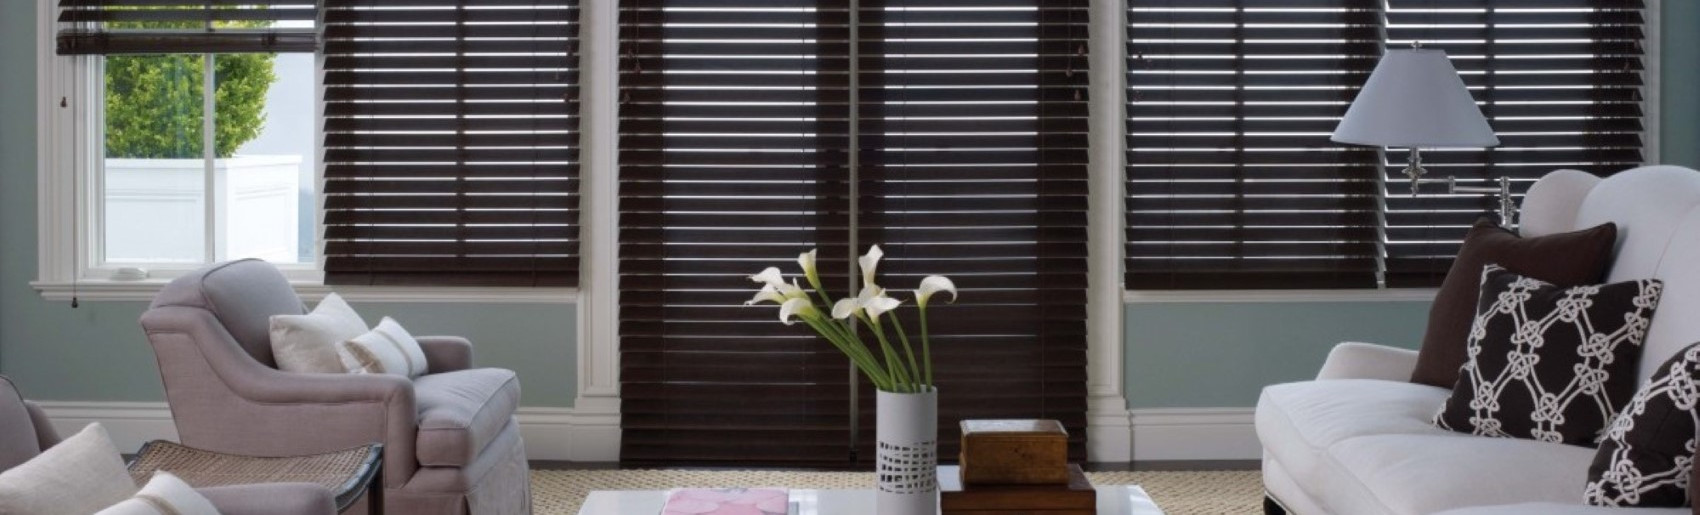 Fresno Wood Blinds